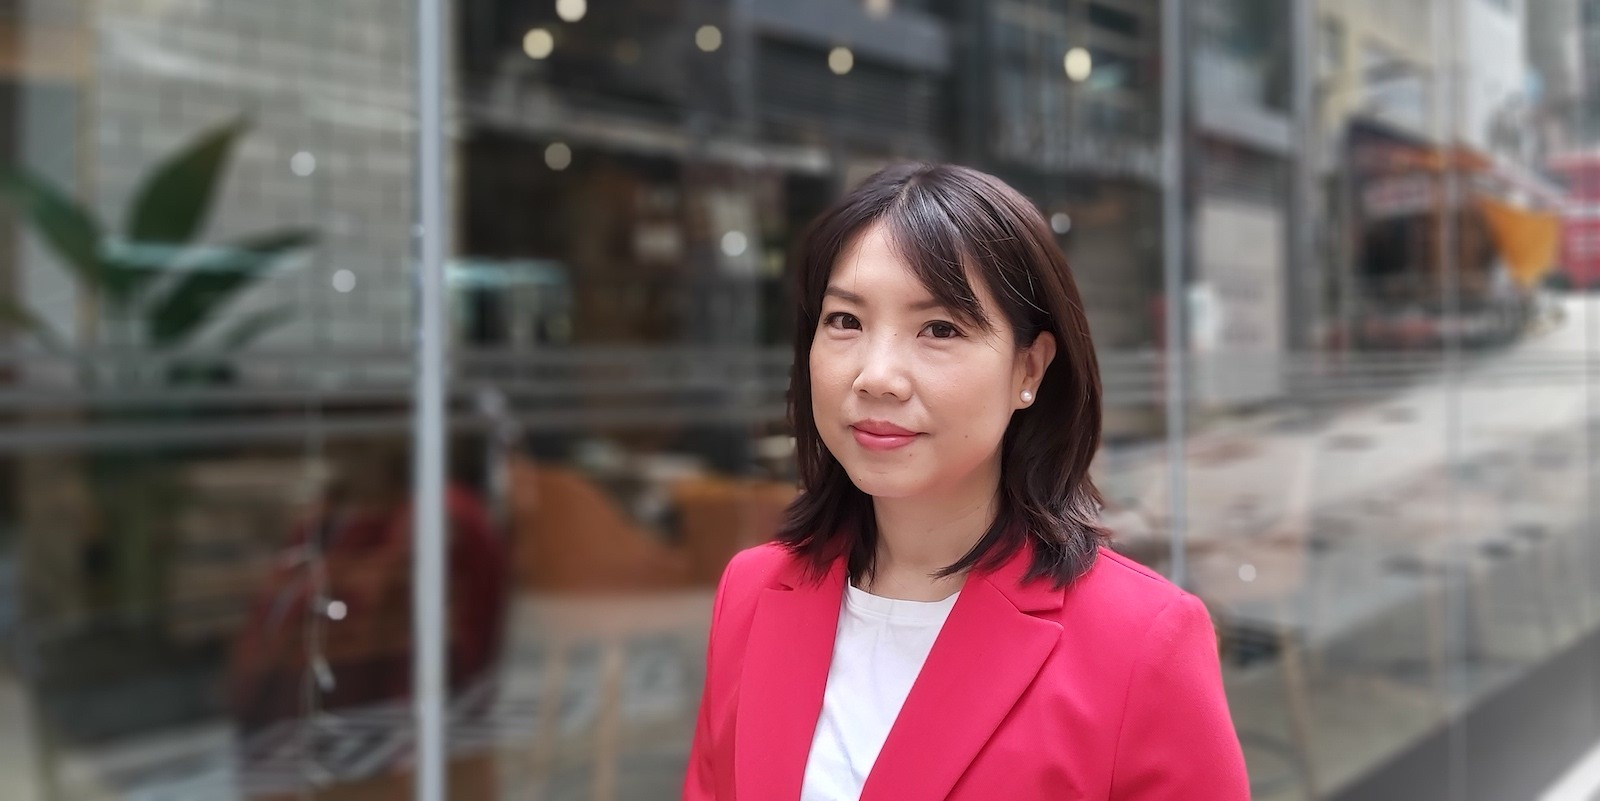 Why It's an Exciting Time to Work in China's Financial Industry, According to This HR Pro (and She's Hiring!)